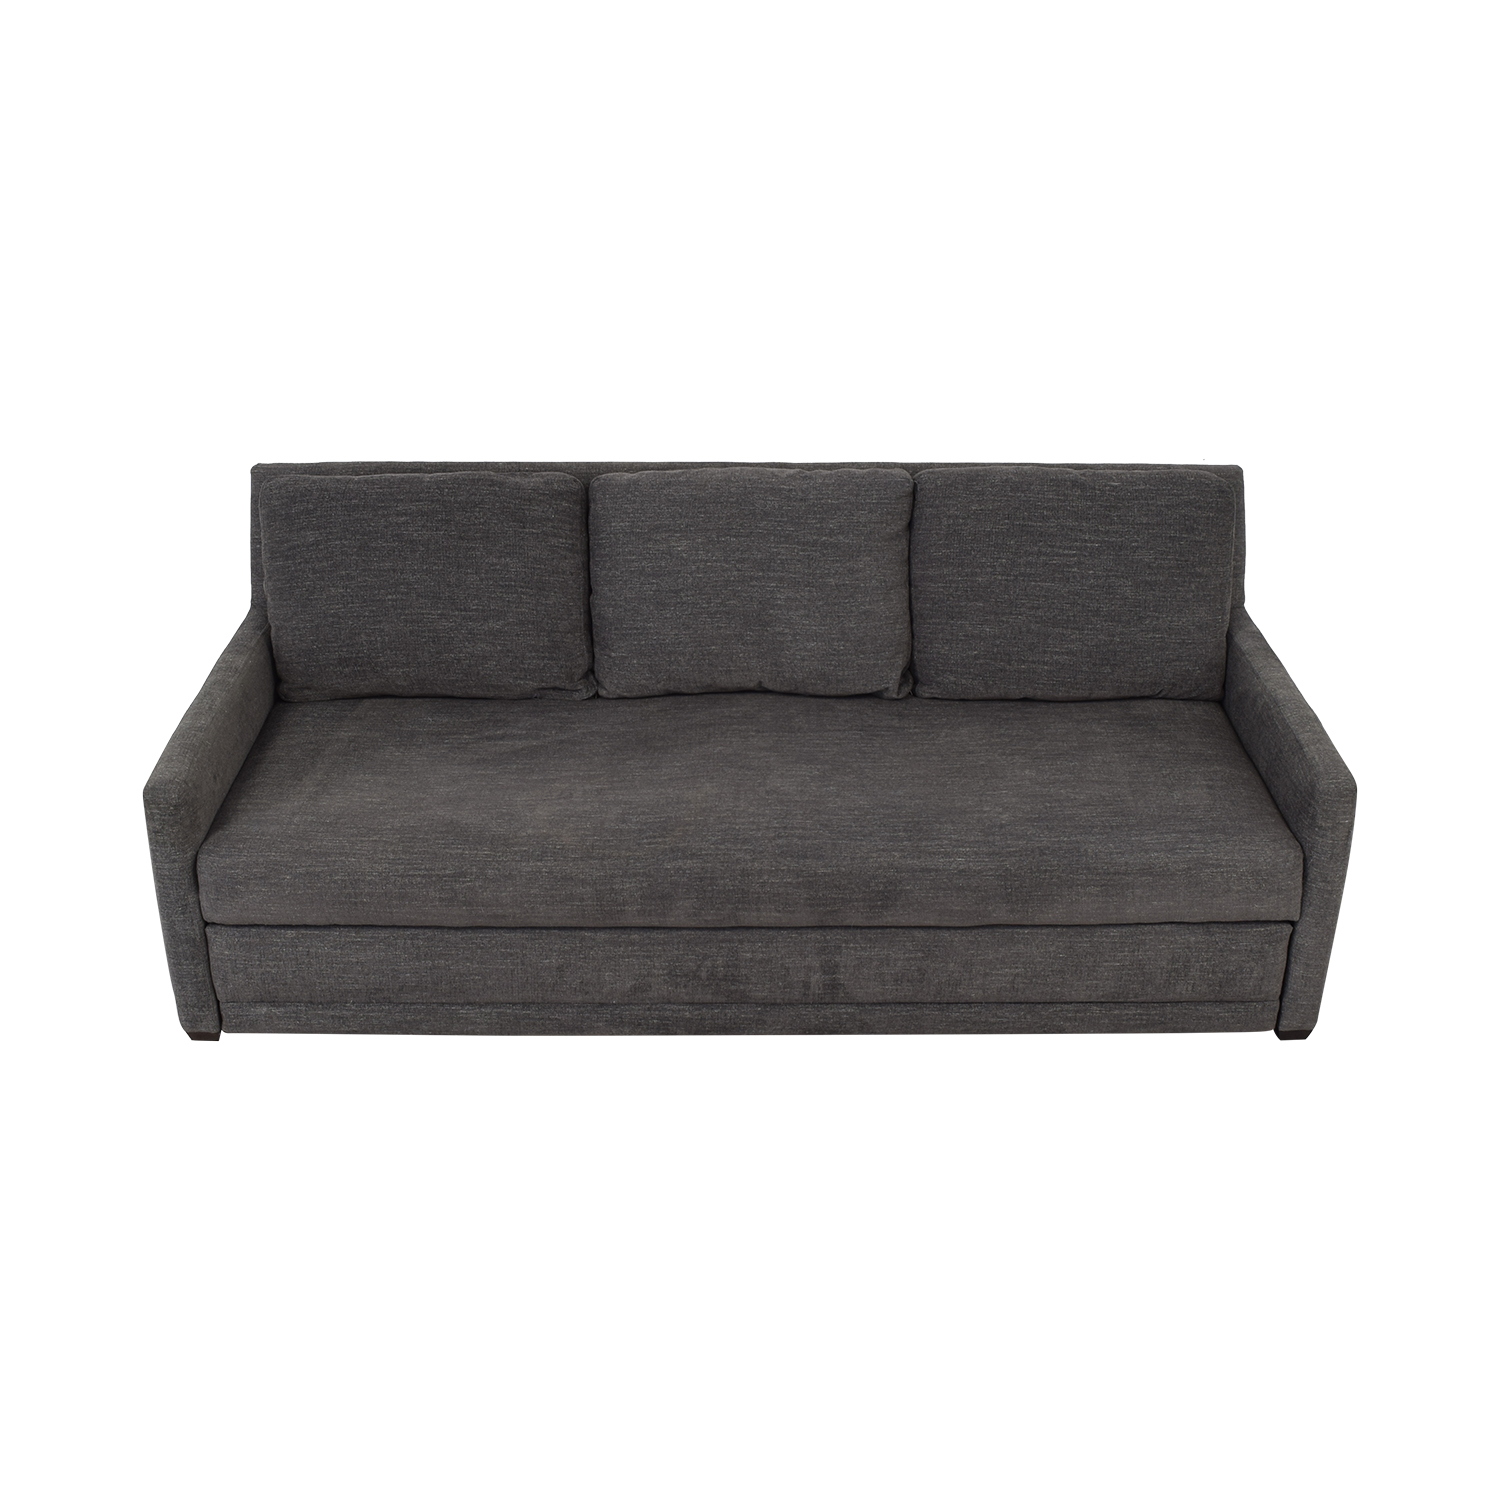 Crate & Barrel Reston Queen Trundle Sleeper Sofa / Sofa Beds